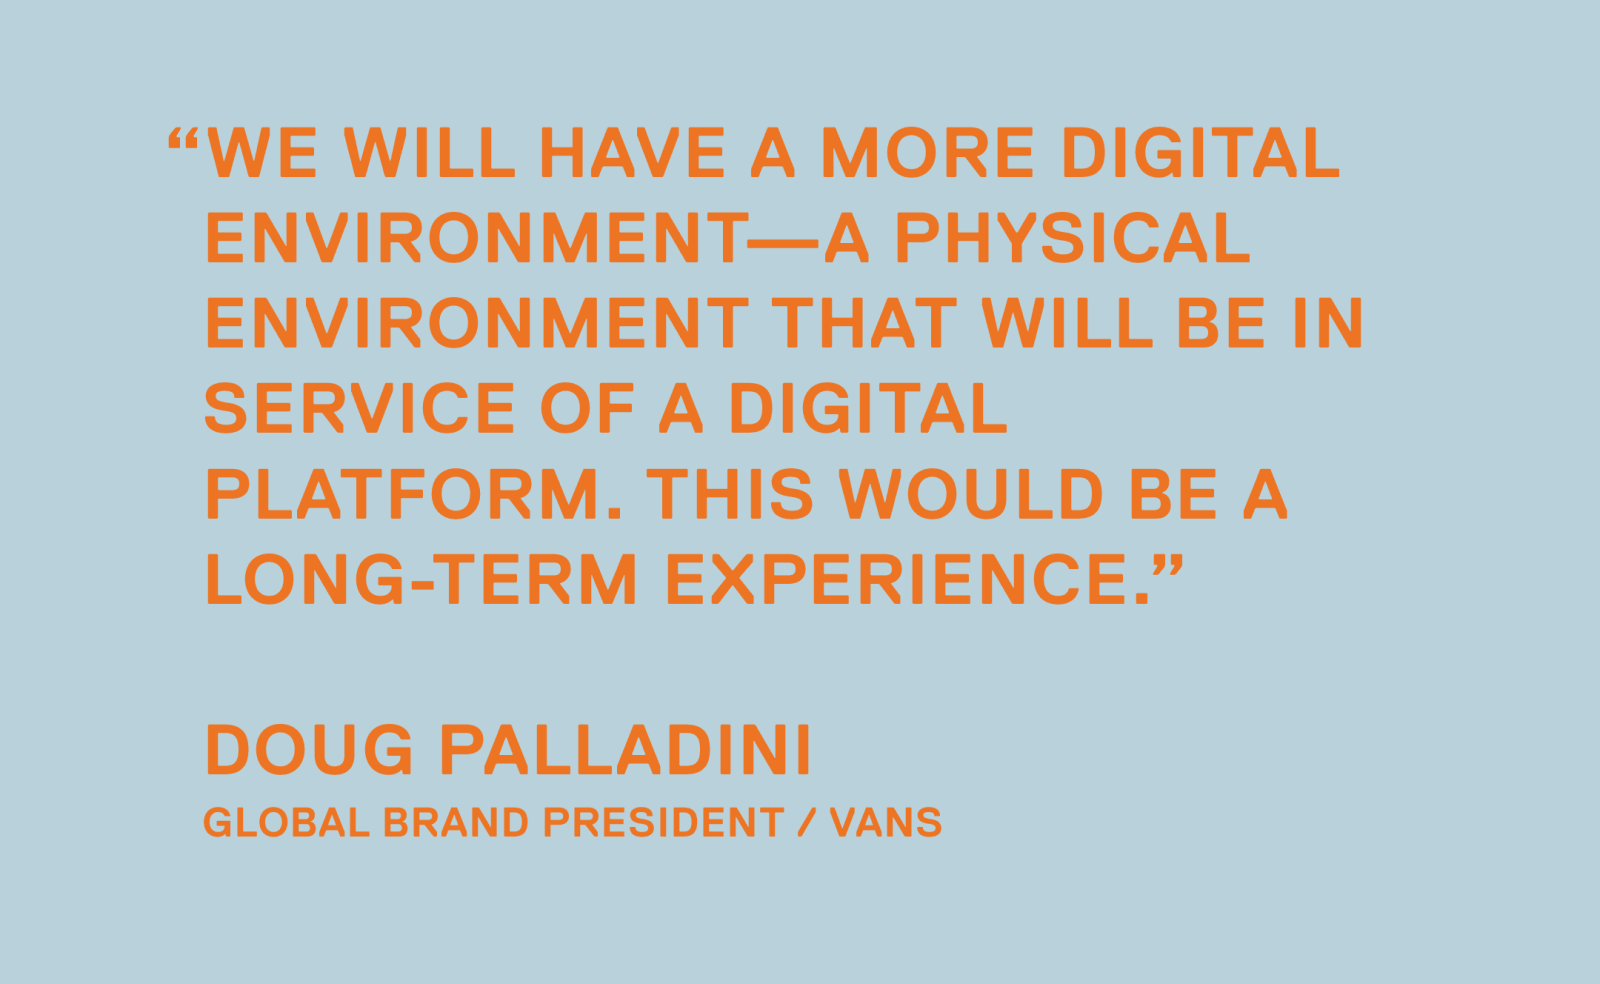 We will have a more digital environment—a physical environment that will be in service of a digital platform. This would be a long-term experience. — Doug Palladini, Global Brand President / Vans